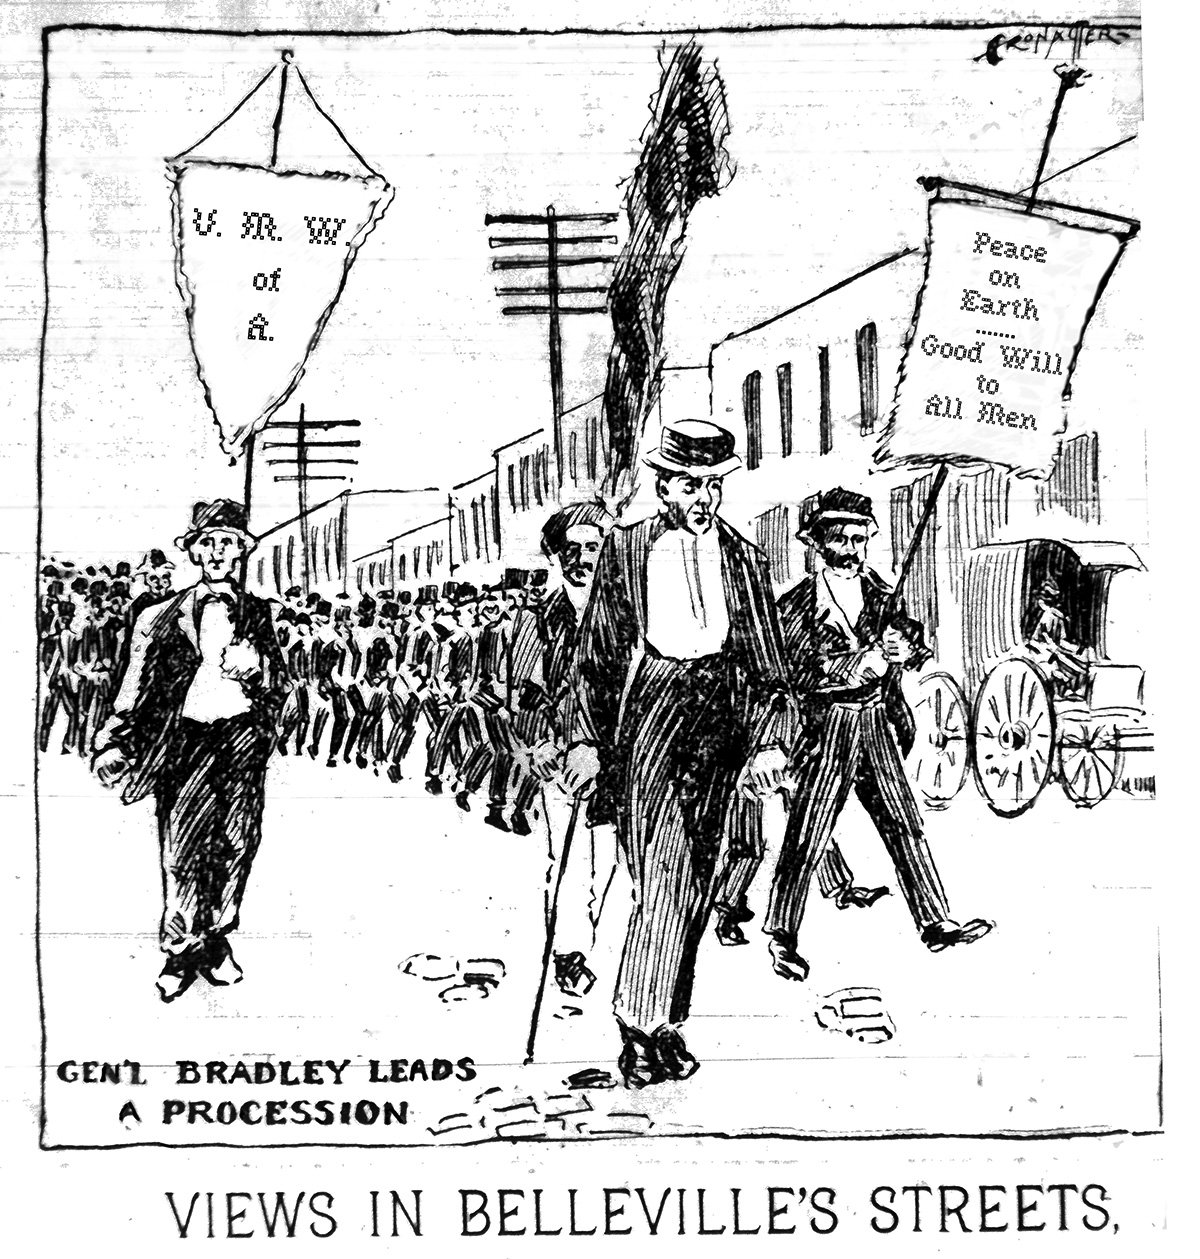 Alexander Bradley.was the Mt. Olive Miner who led the 1897 miners march to shut down the mines, a strike that brought about the 8 hour day. It was a catalyst for shutting down all the coal mines in the state. Bradley had entered the mines as